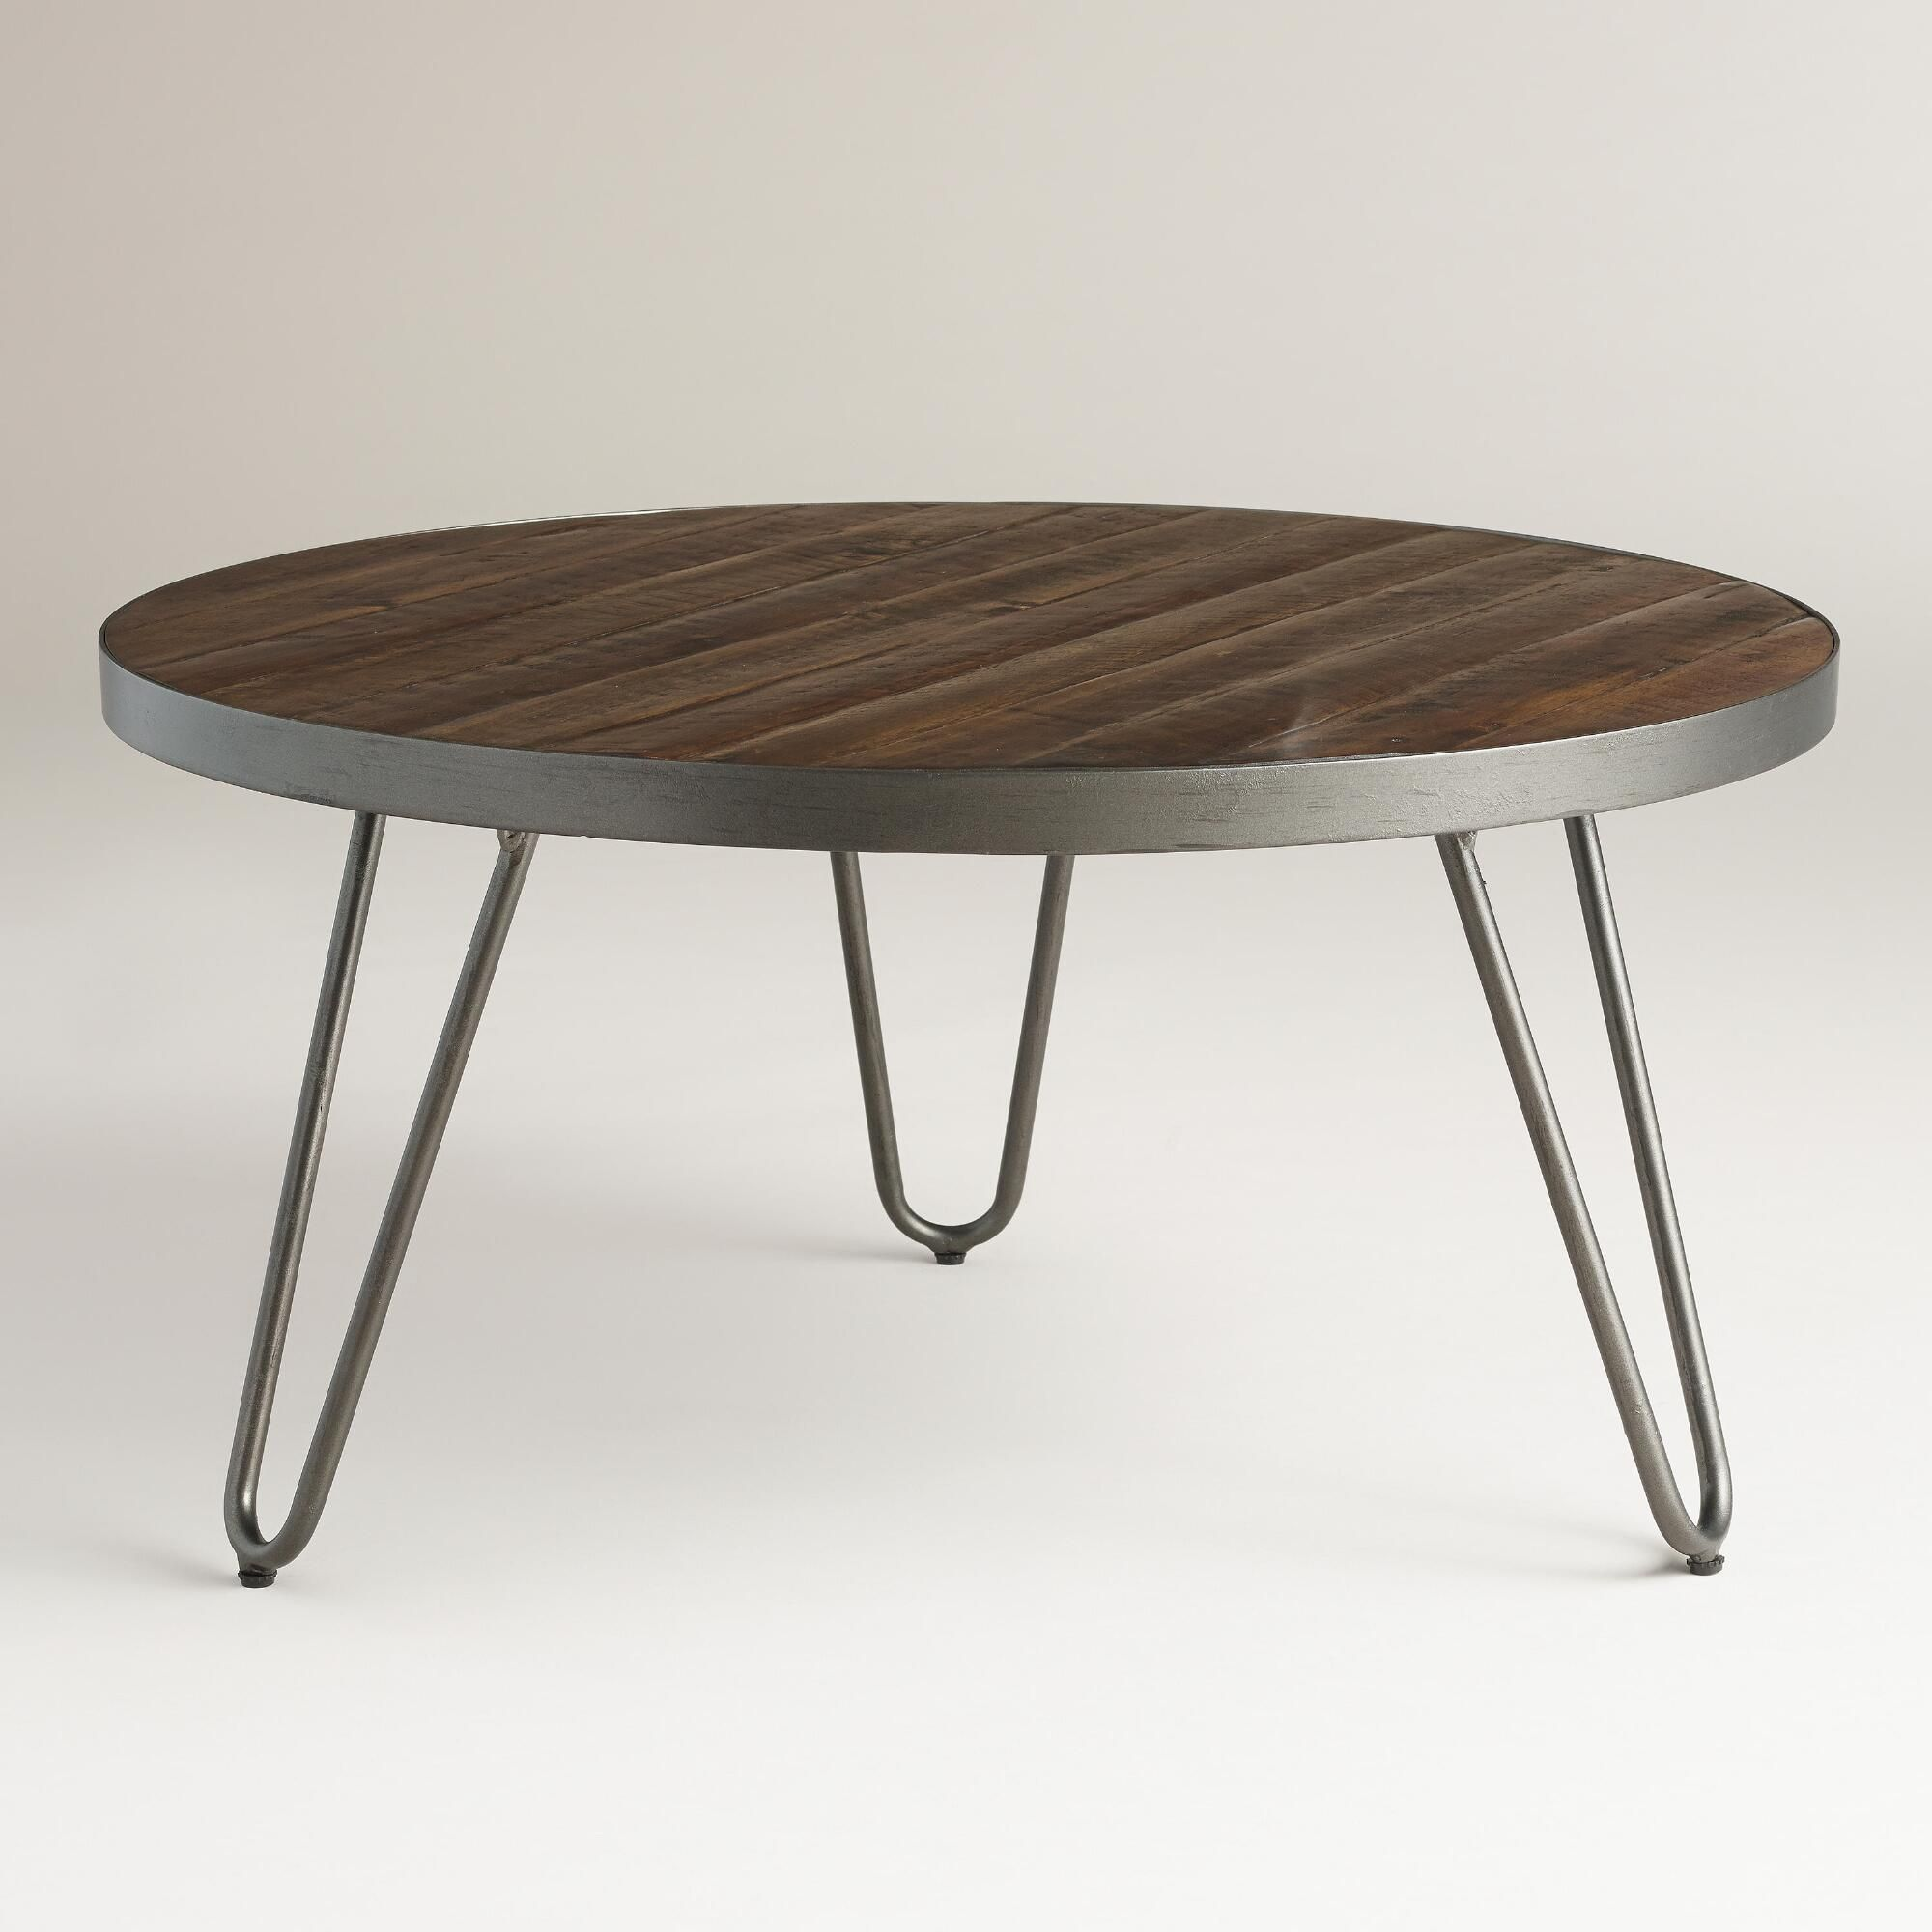 Round Wood Coffee Table With Metal Legs Round Wood Hairpin Coffee Table Hairpin Legs Acacia